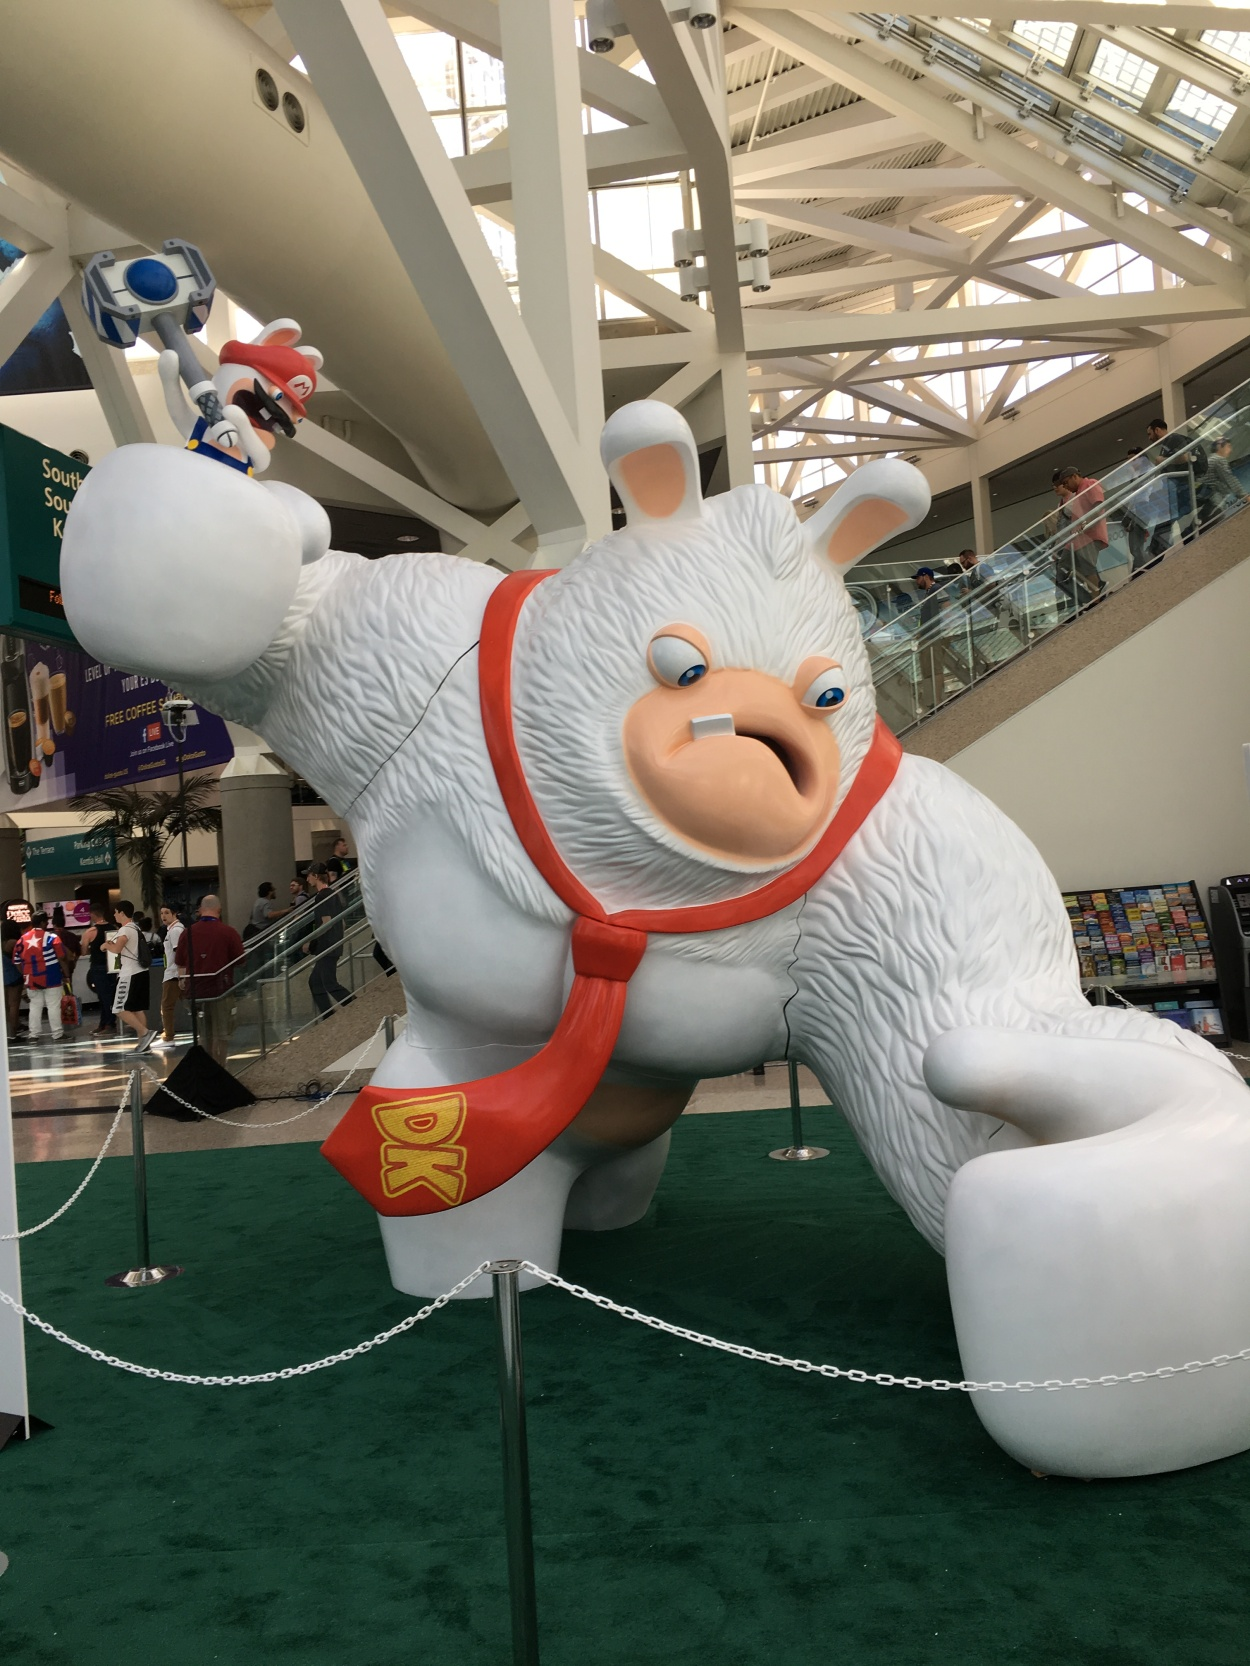 a giant rabbid with a dk tie